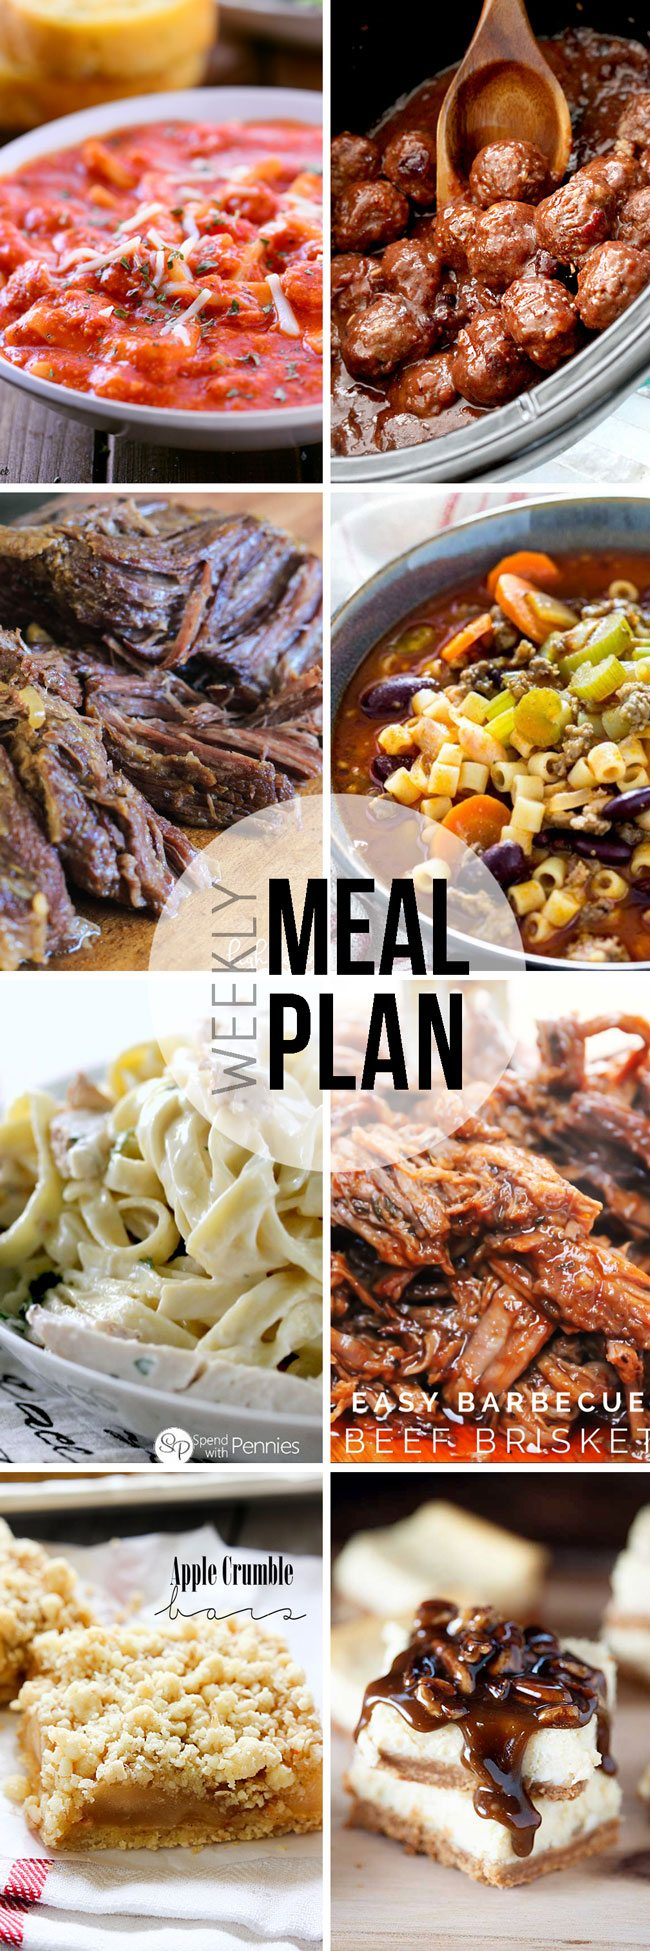 Meal-Plan-Pinterest-27